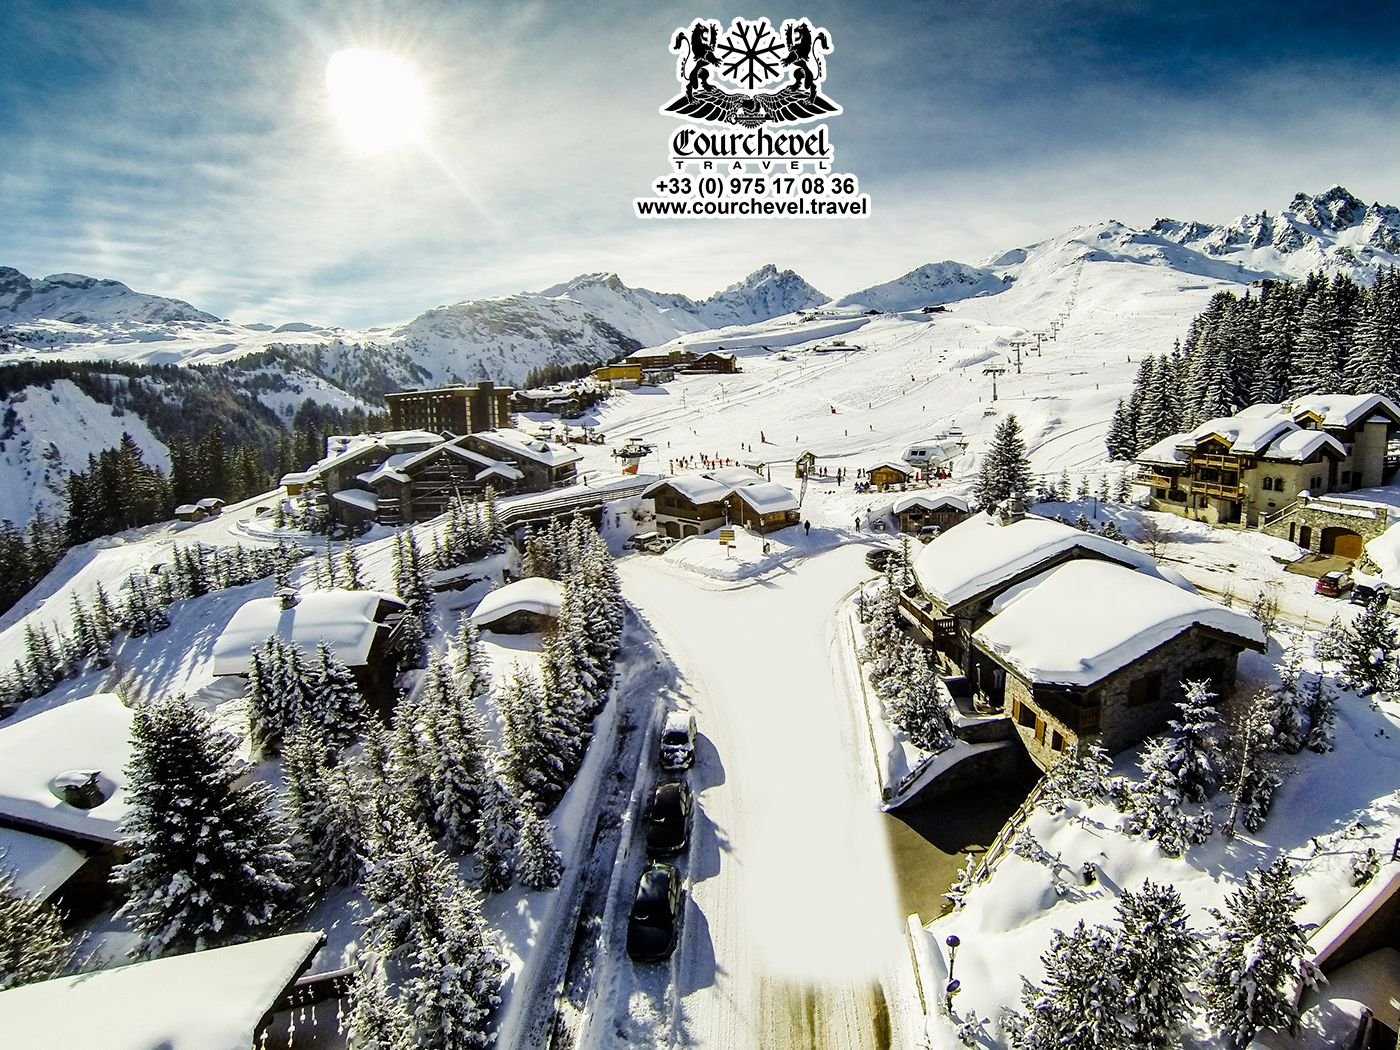 Courchevel Ski Resort, France The most exclusive ski resort in Europe. http://courchevel.travel/